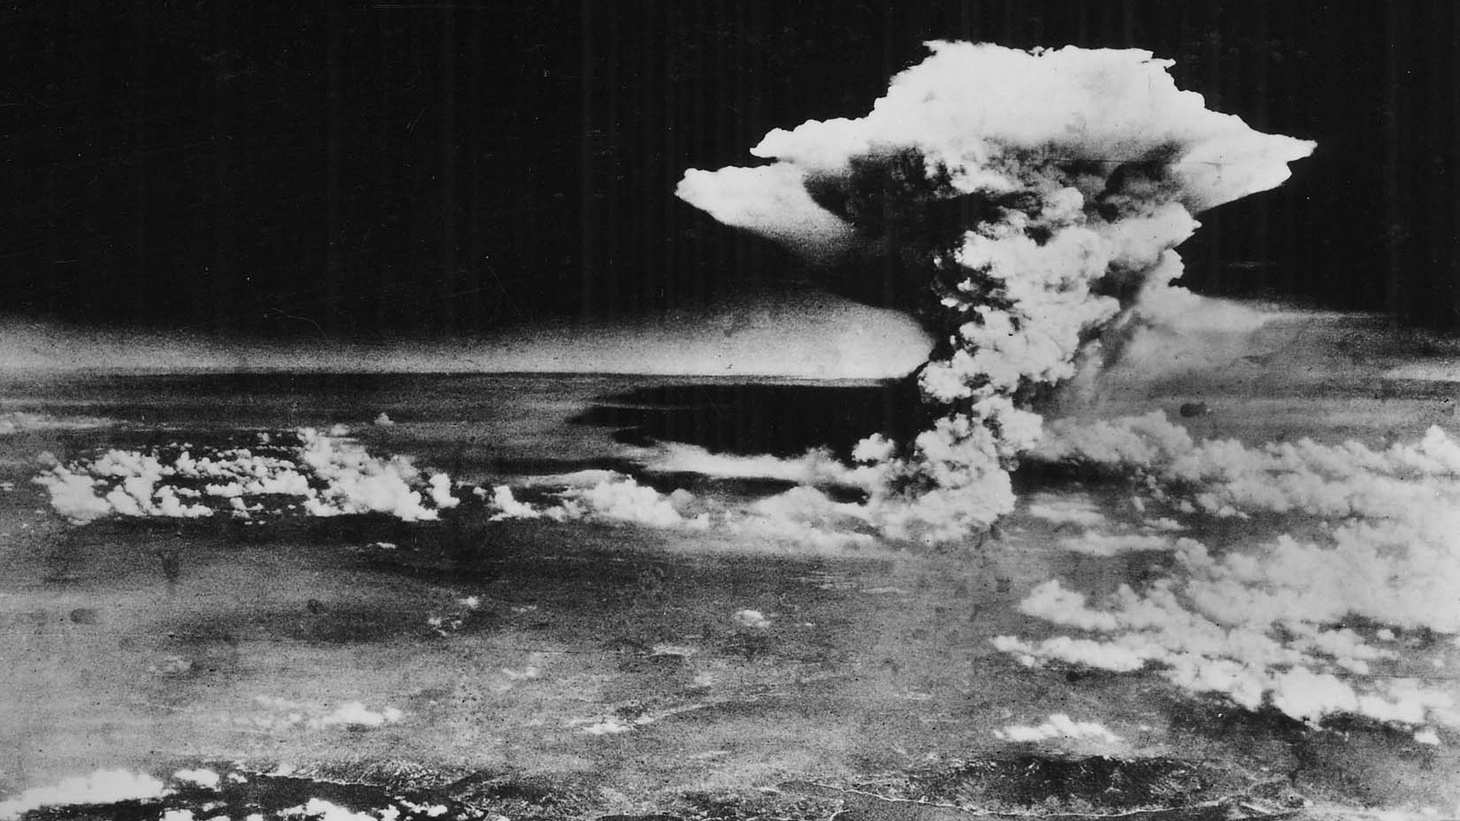 President Obama will visit Hiroshima, but he will not apologize for the atomic bombing of the city. Plus, what scientists have learned about radiation exposure in the more than seventy years since.